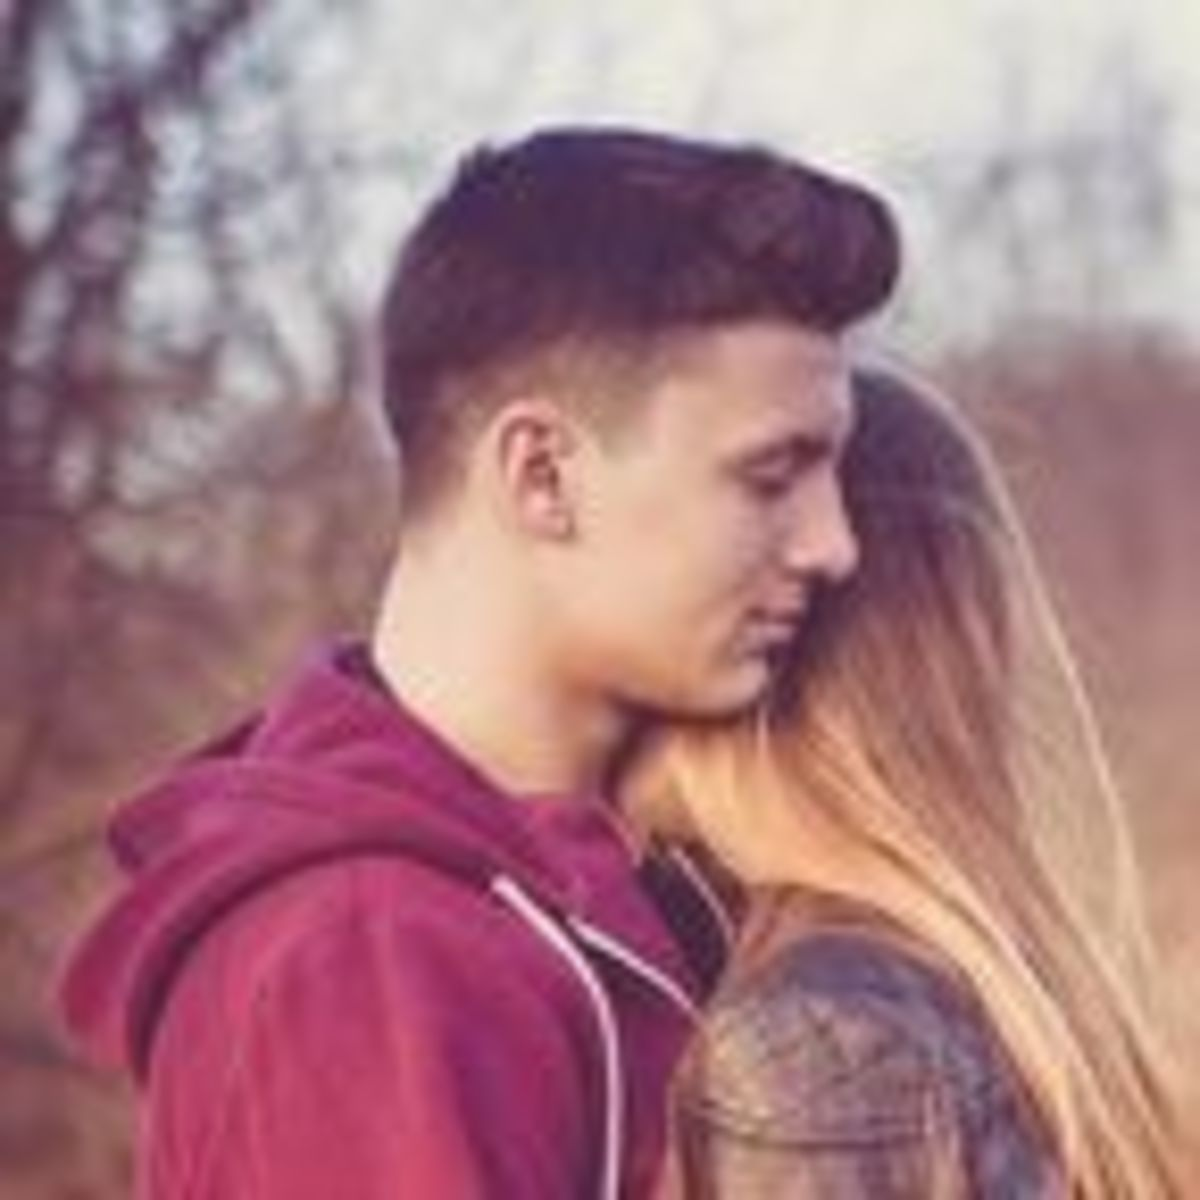 7 Basic Rules for Hugging | Psychology Today